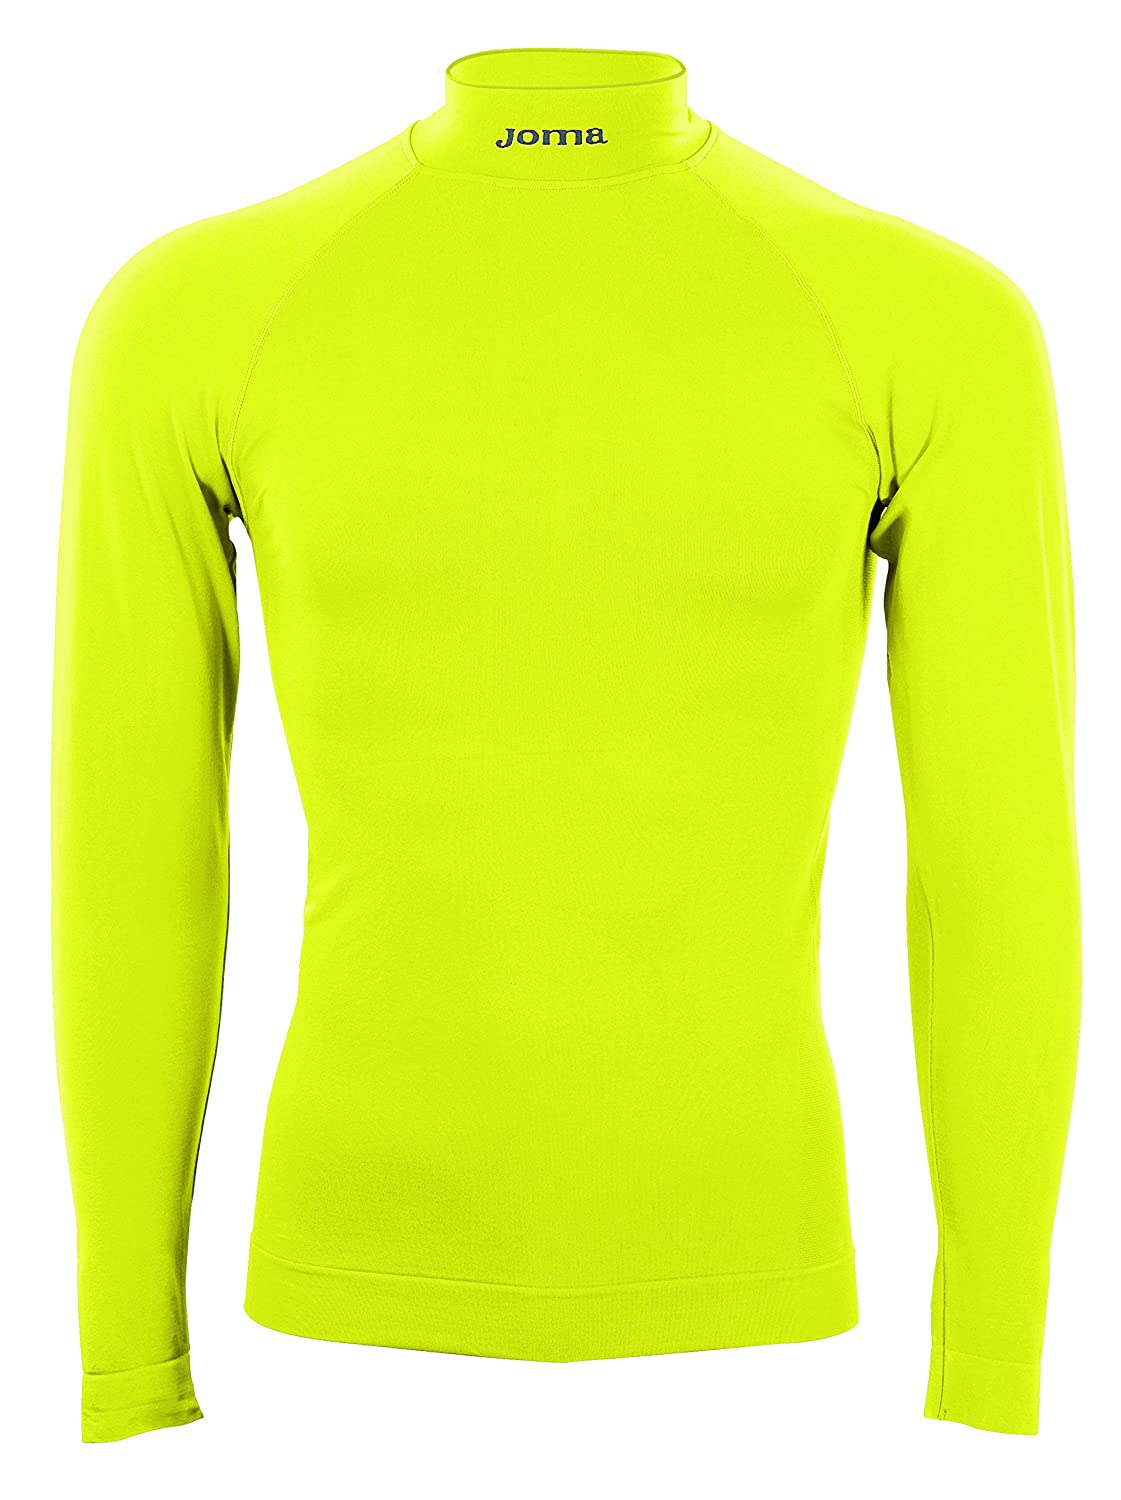 JOMA SHIRT TURTLE NECK (SEAMLESS)L/S Uniforms CAMISETA TERMICA FLUOR YELLOW 0-2: Amazon.es: Deportes y aire libre